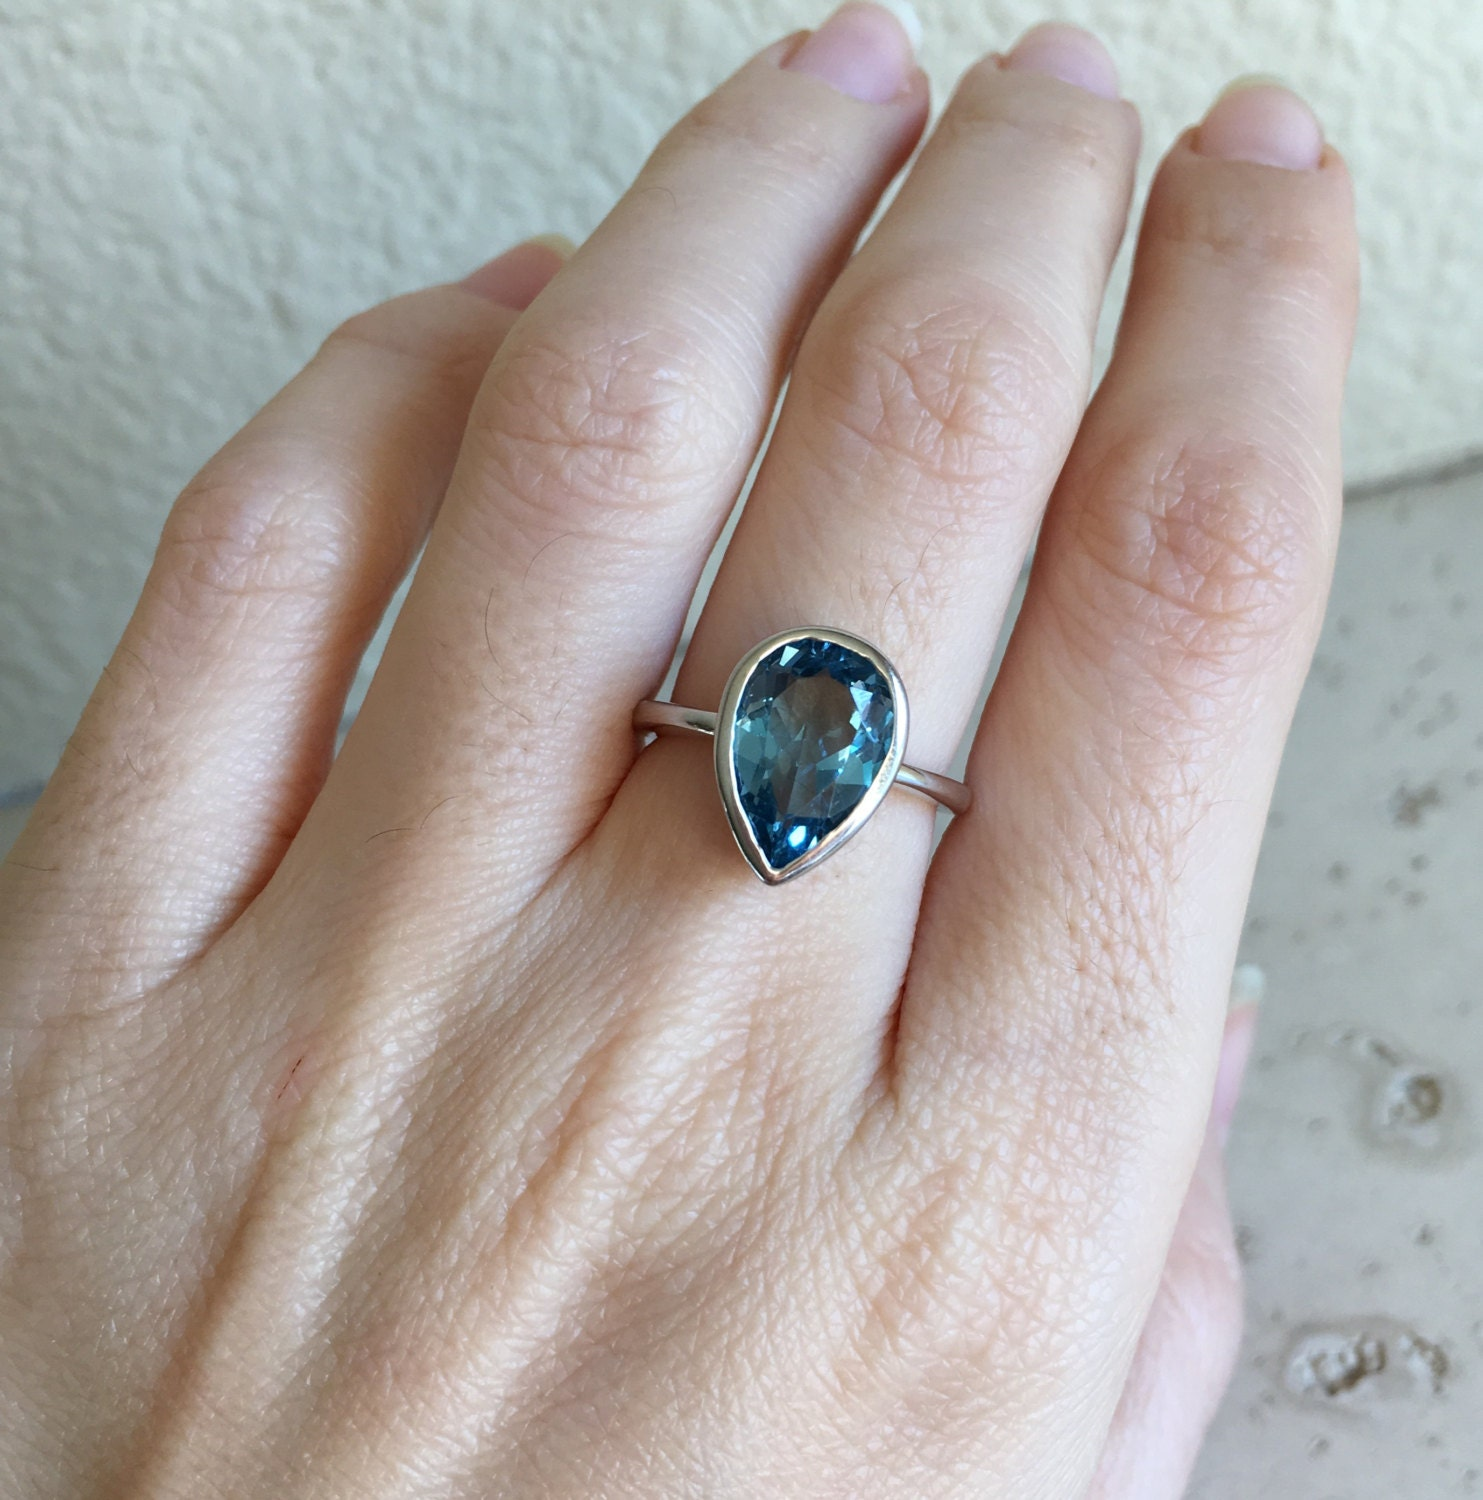 with black sterling setting crazyassjewelry ring buy labradorite galery blue by made a rings silver engagement crown custom dark